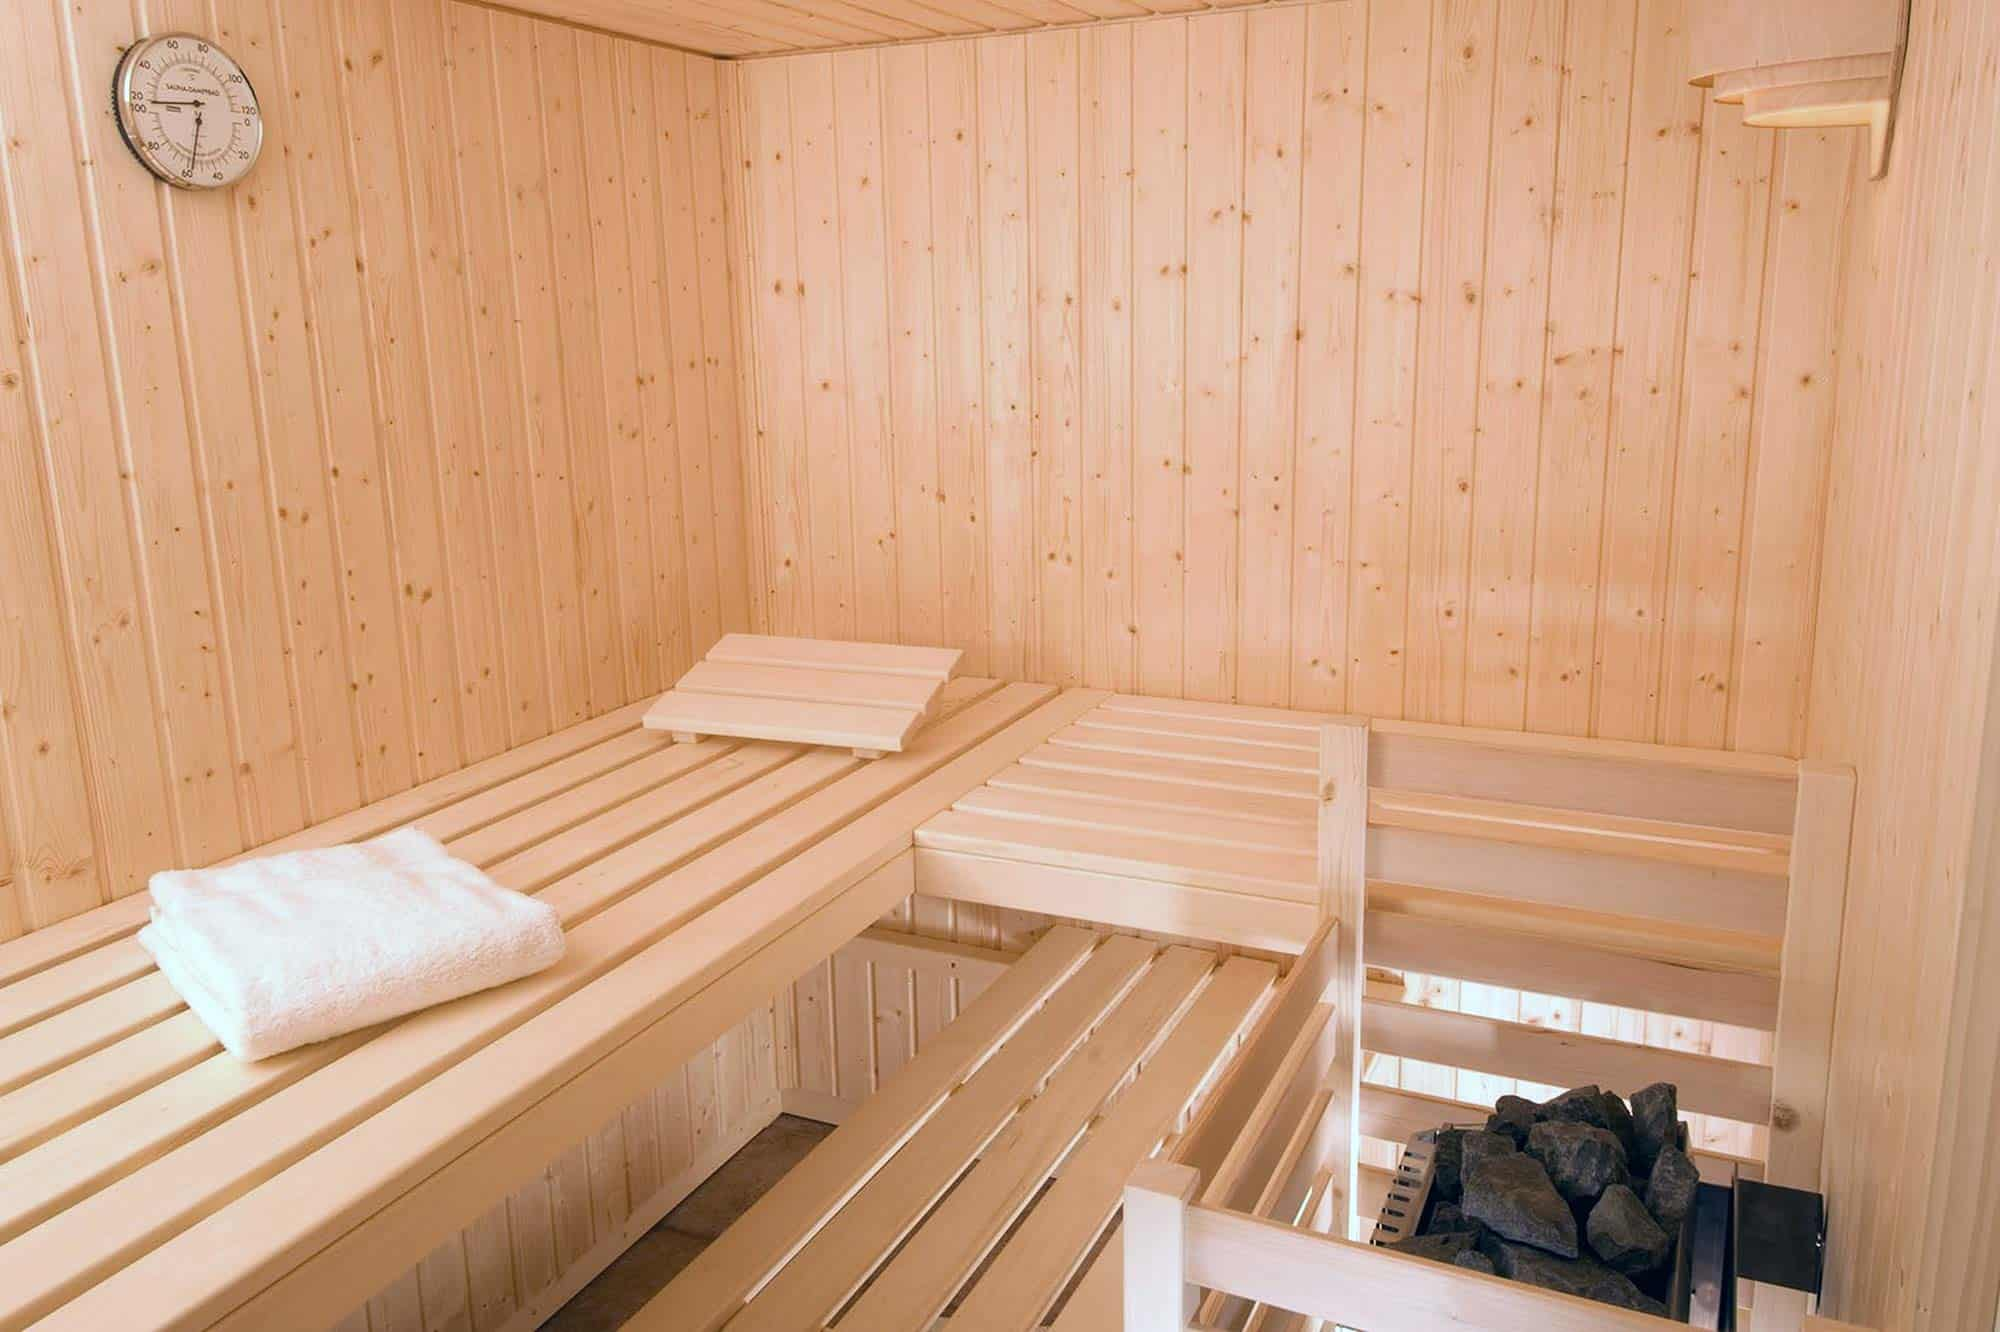 sauna und kampfsport eine wirkungsvolle kombination f r kampfsportler. Black Bedroom Furniture Sets. Home Design Ideas